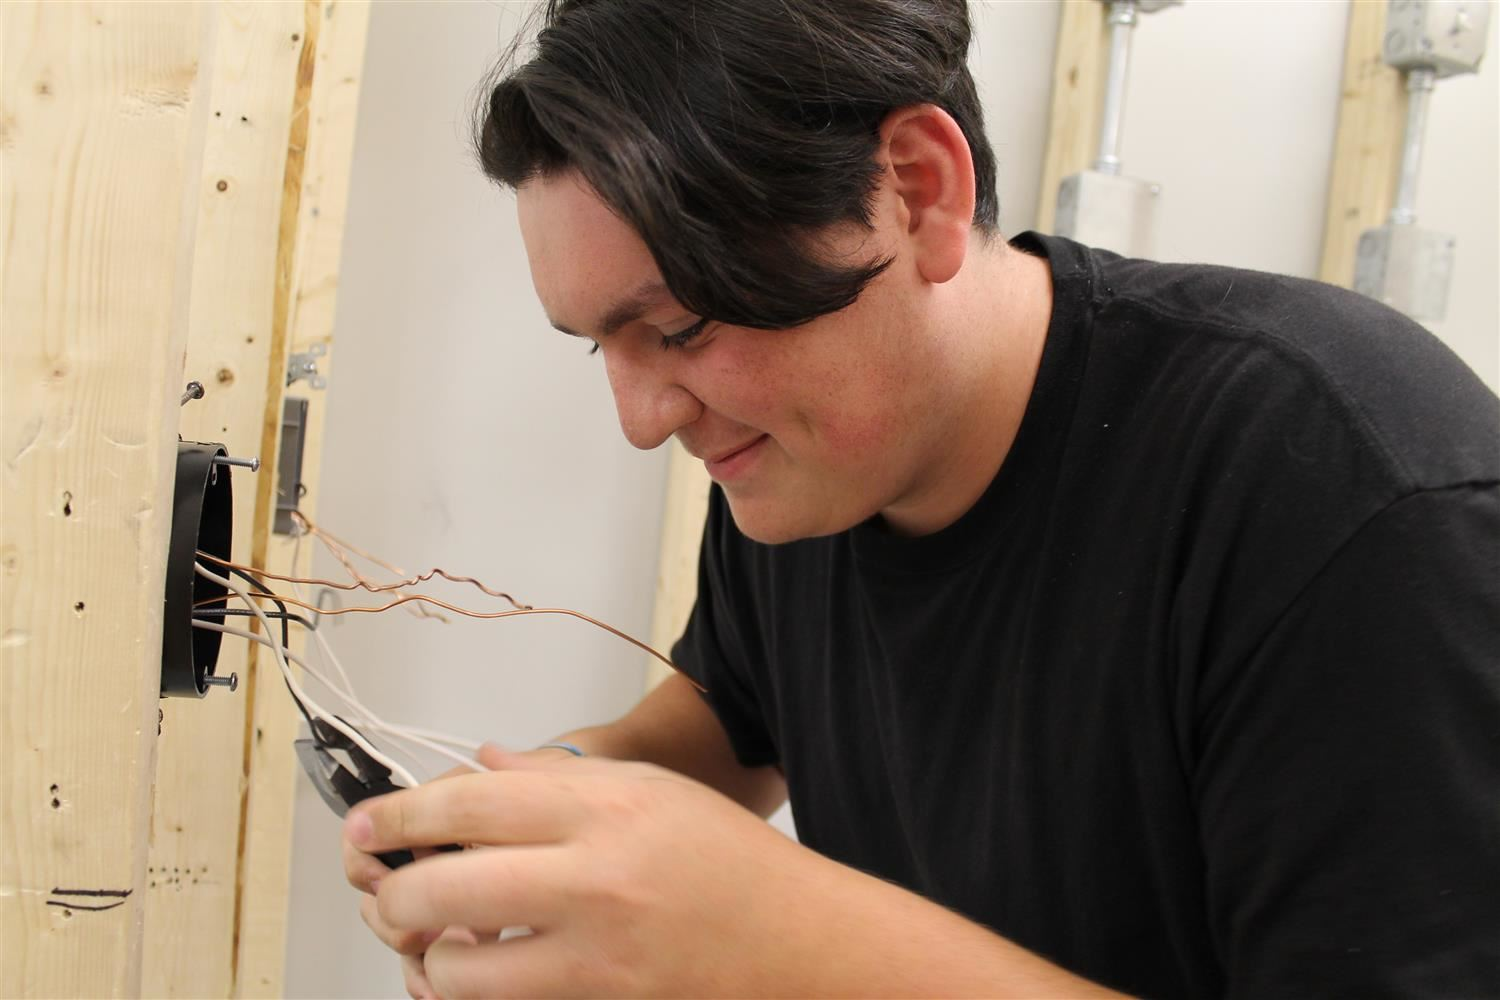 Student wiring an electrical outlet